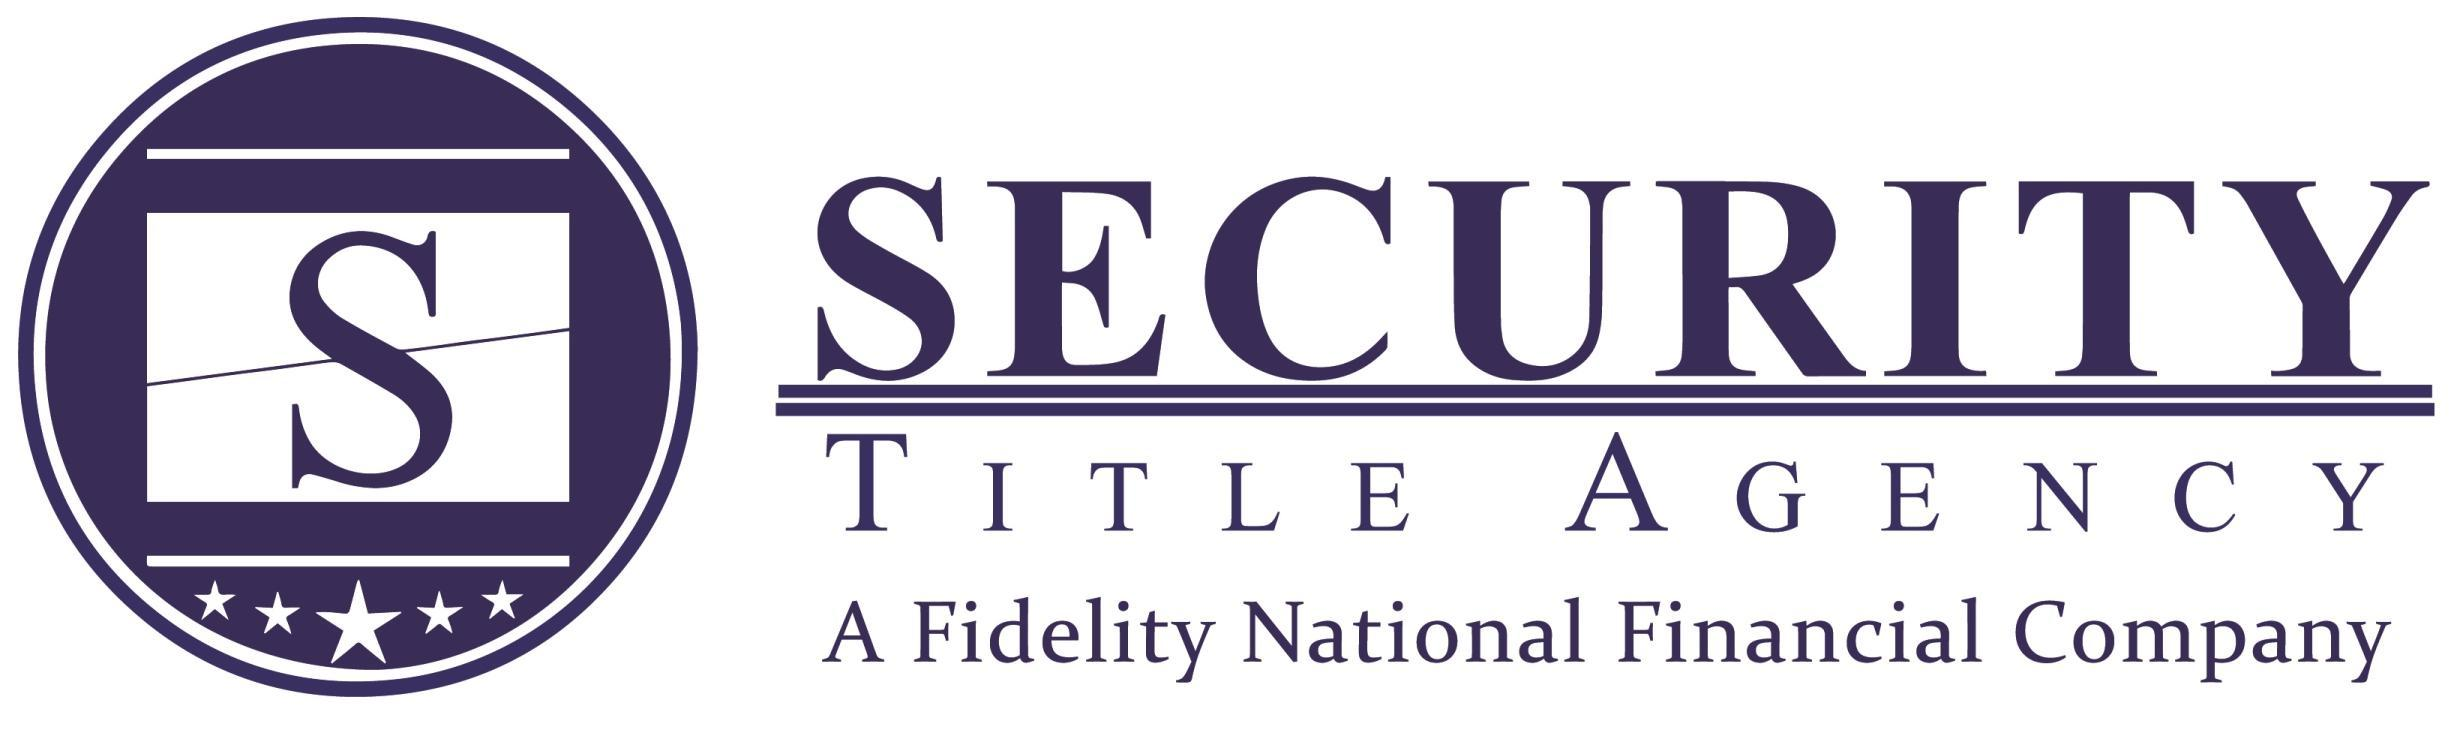 Security Title Agency logo